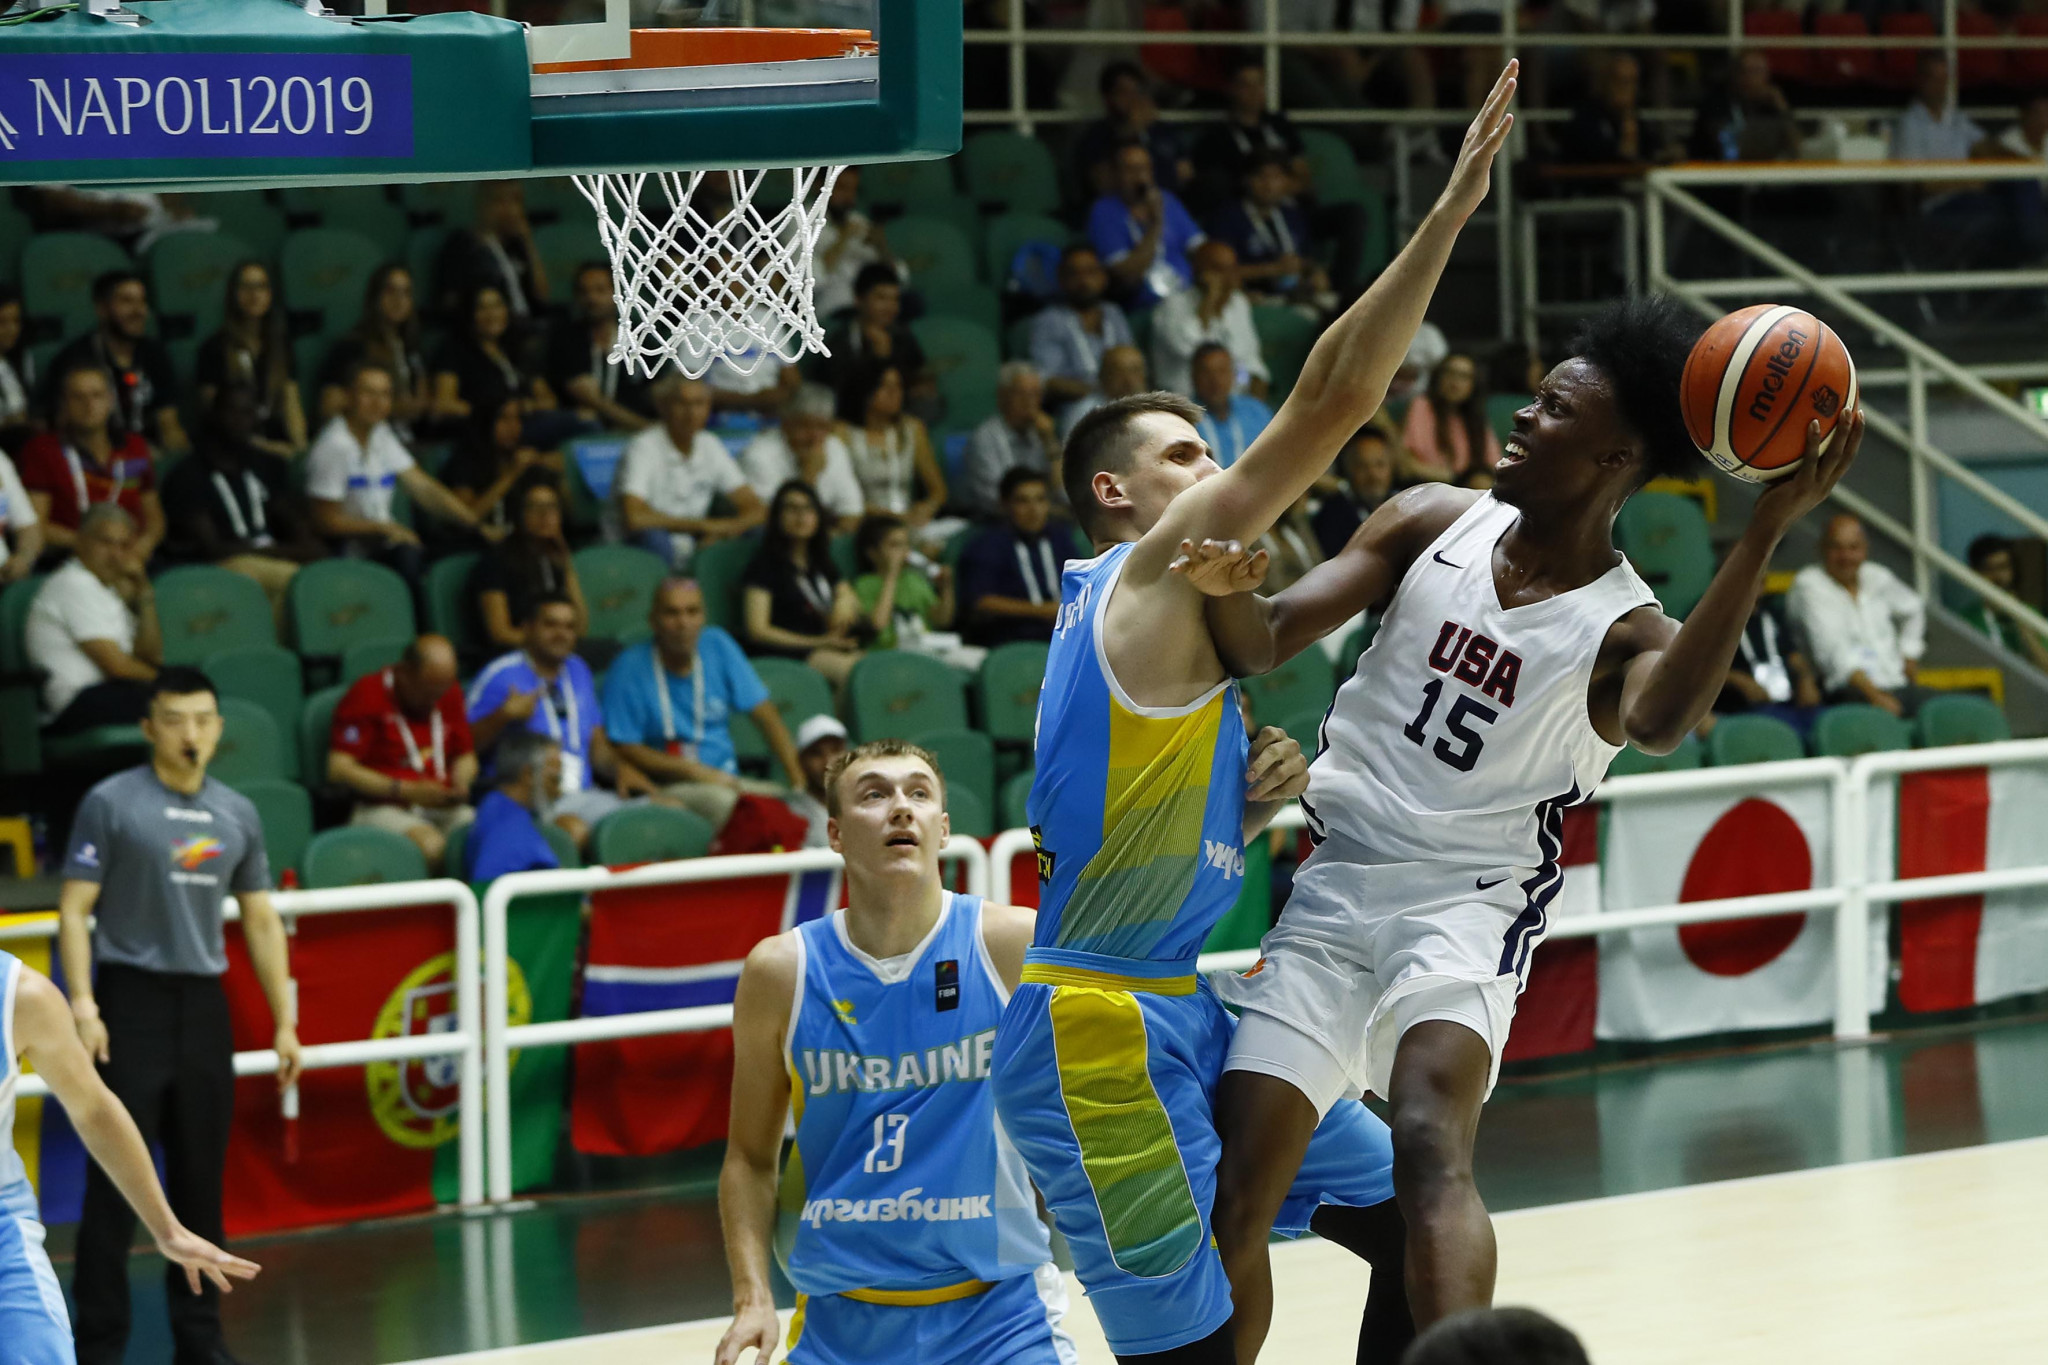 The US were the winners, triumphing 85-63 ©Naples 2019